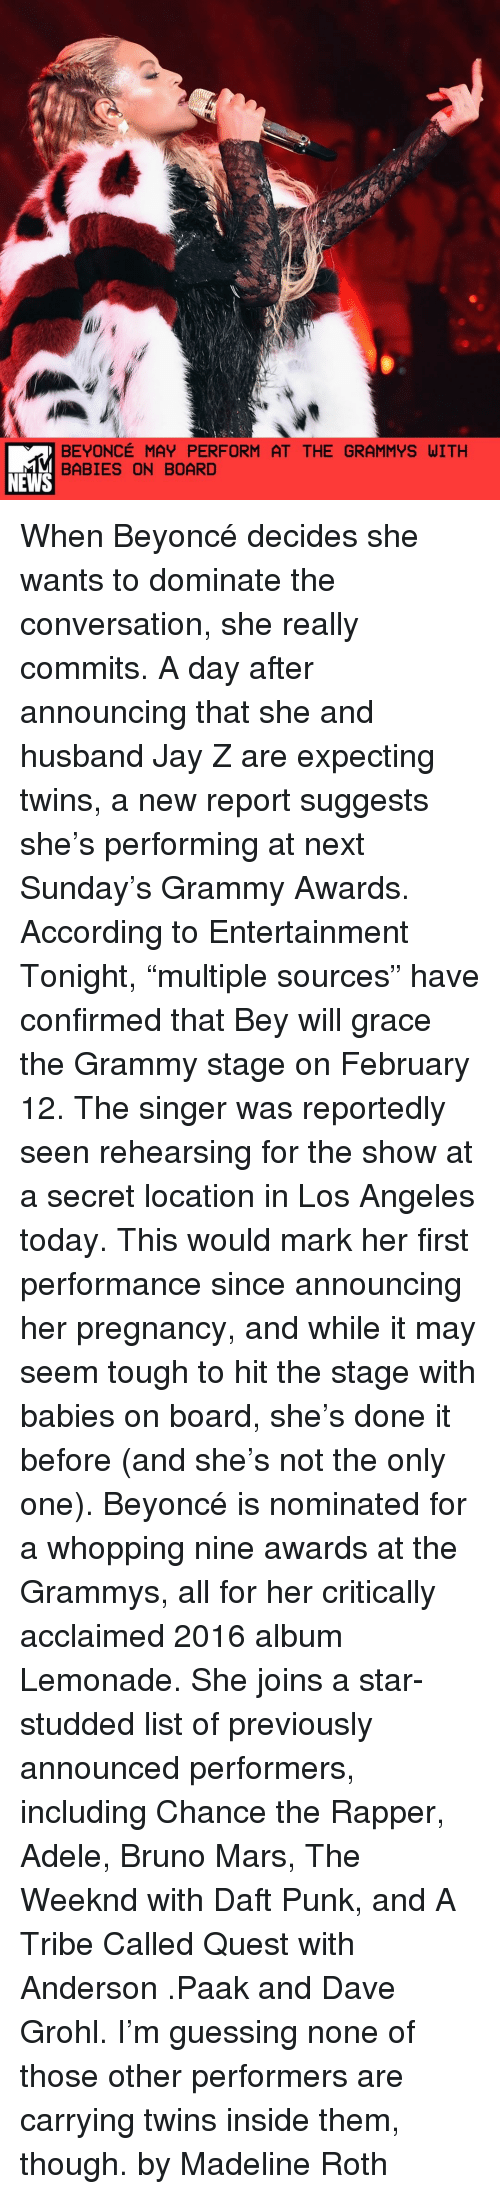 """Bruno Mars, Chance the Rapper, and Dave Grohl: BEYONCE MAY PERFORM AT THE GRAMMYS WITH  BABIES ON BOARD  NEWS When Beyoncé decides she wants to dominate the conversation, she really commits. A day after announcing that she and husband Jay Z are expecting twins, a new report suggests she's performing at next Sunday's Grammy Awards. According to Entertainment Tonight, """"multiple sources"""" have confirmed that Bey will grace the Grammy stage on February 12. The singer was reportedly seen rehearsing for the show at a secret location in Los Angeles today. This would mark her first performance since announcing her pregnancy, and while it may seem tough to hit the stage with babies on board, she's done it before (and she's not the only one). Beyoncé is nominated for a whopping nine awards at the Grammys, all for her critically acclaimed 2016 album Lemonade. She joins a star-studded list of previously announced performers, including Chance the Rapper, Adele, Bruno Mars, The Weeknd with Daft Punk, and A Tribe Called Quest with Anderson .Paak and Dave Grohl. I'm guessing none of those other performers are carrying twins inside them, though. by Madeline Roth"""